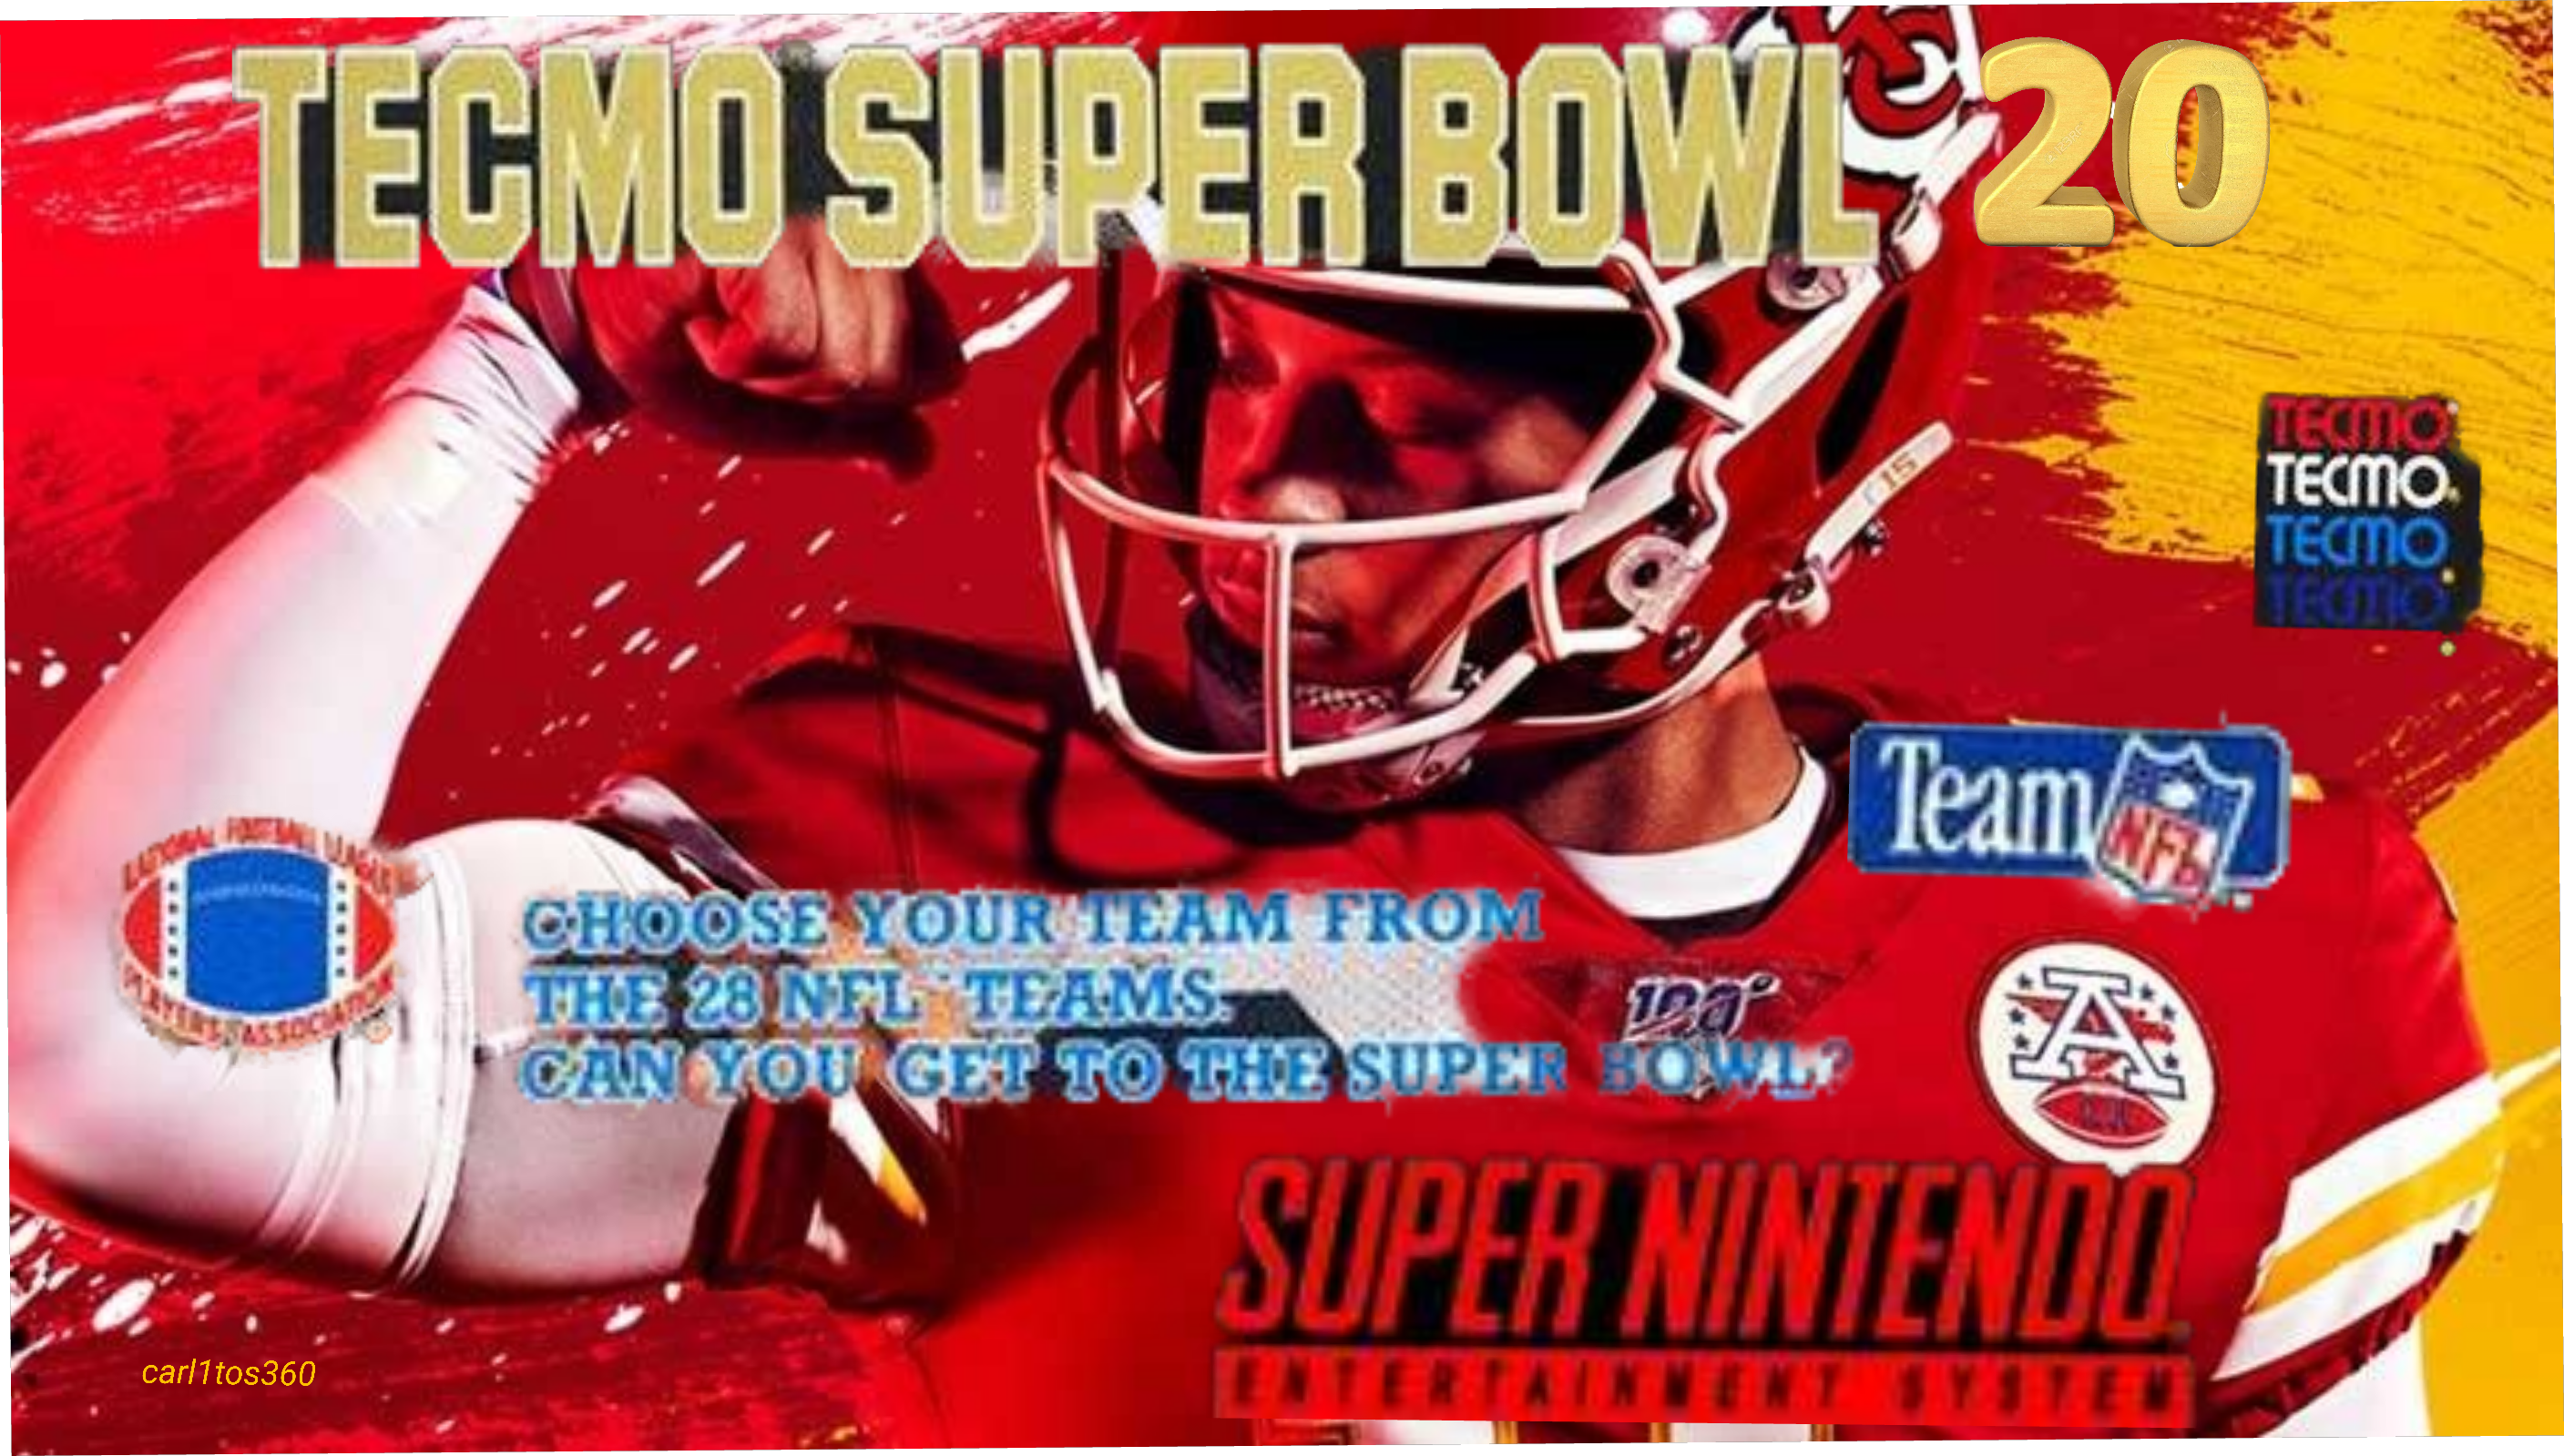 Tecmo Super Bowl1 Snes w Nes players project